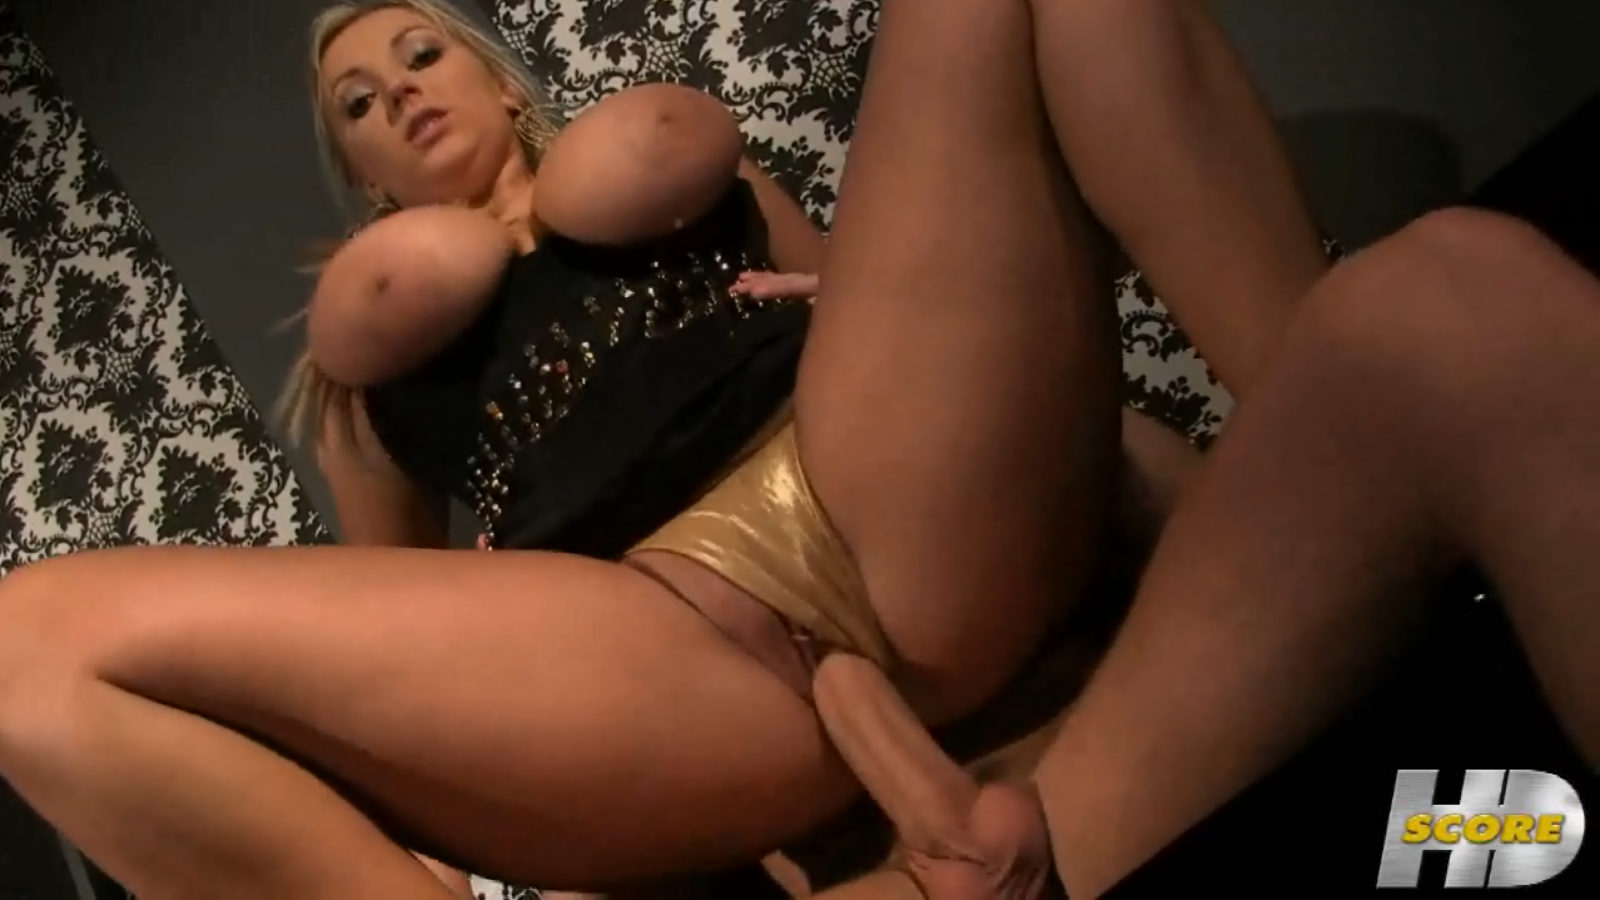 Jynx hollywood and sexing